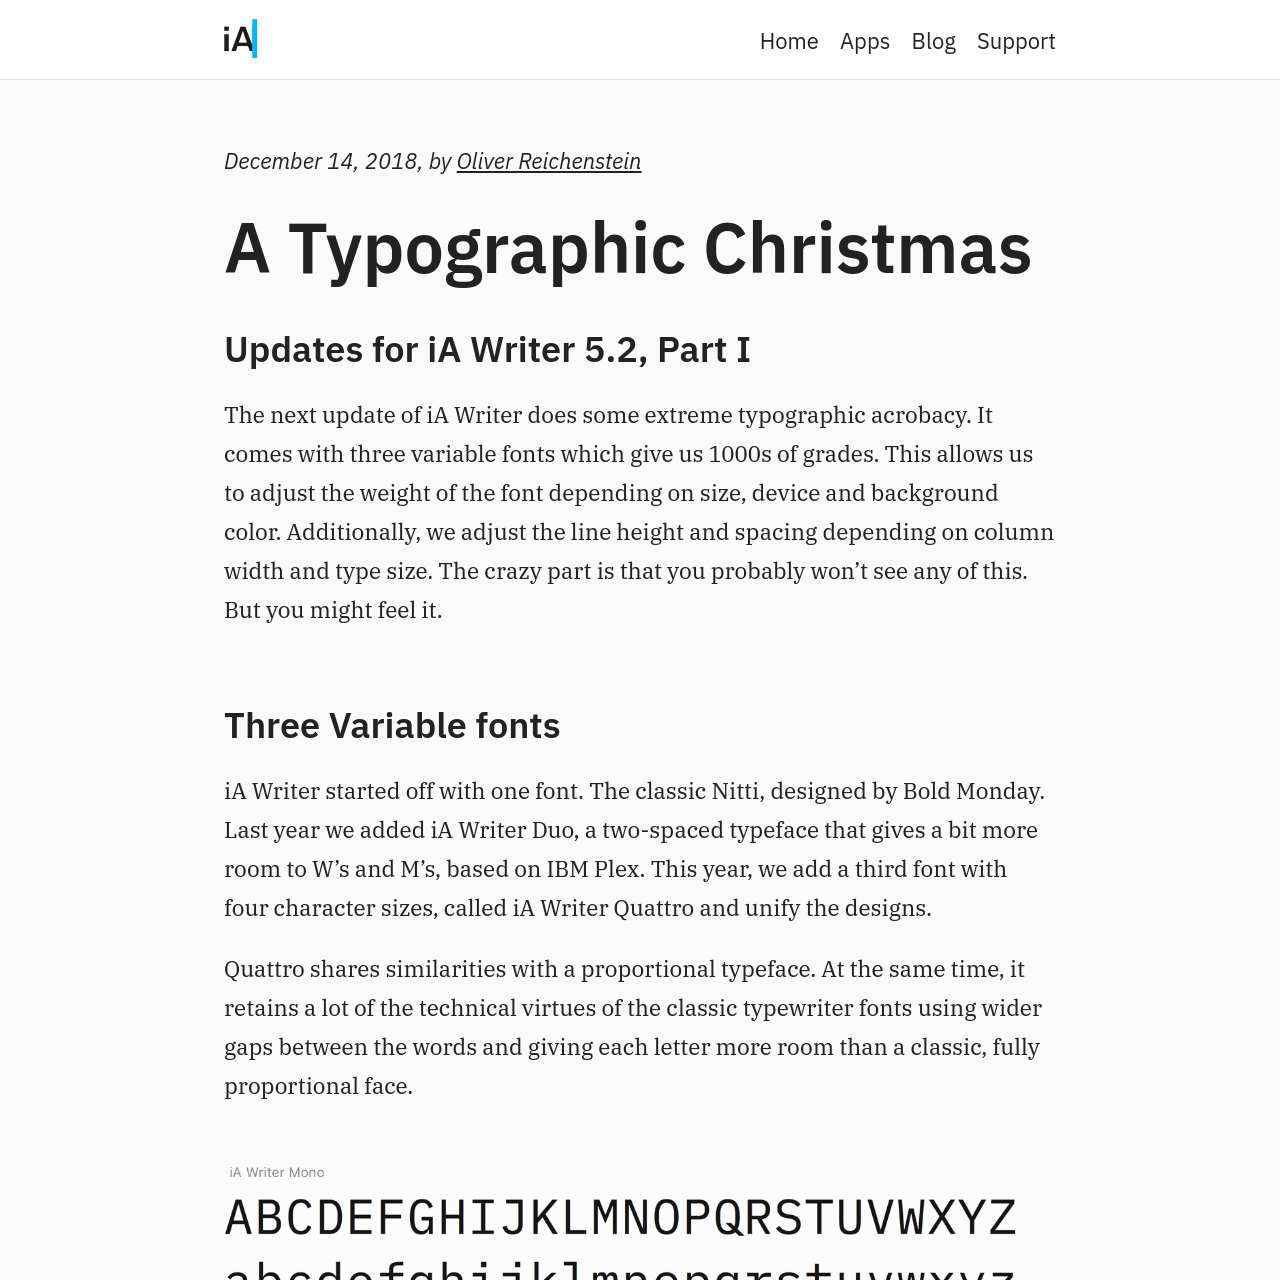 Are na / A Typographic Christmas